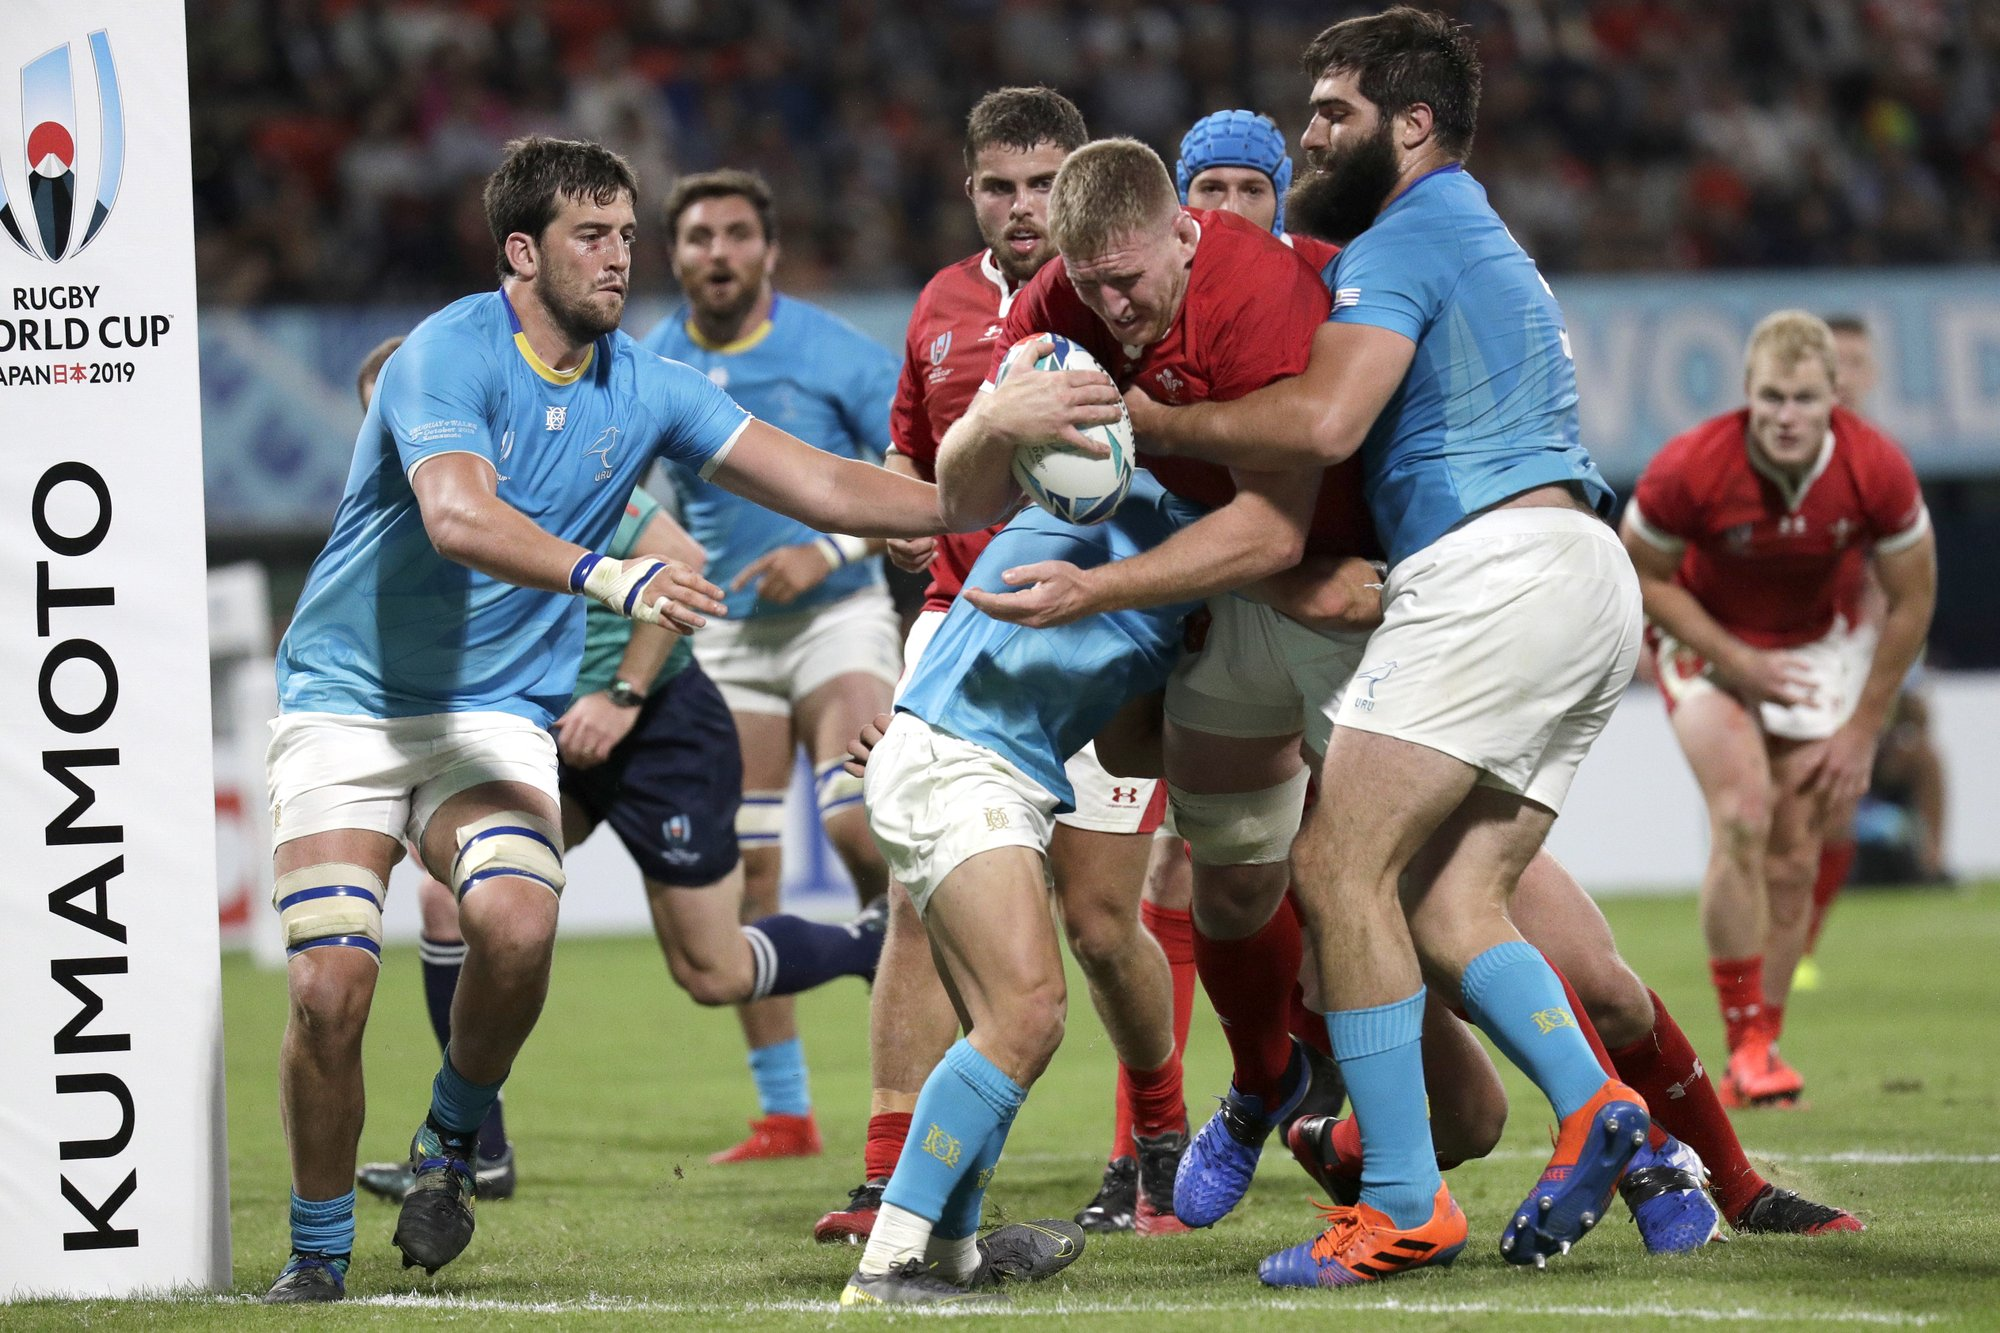 Wales keen to forget Uruguay result and mull quarterfinal